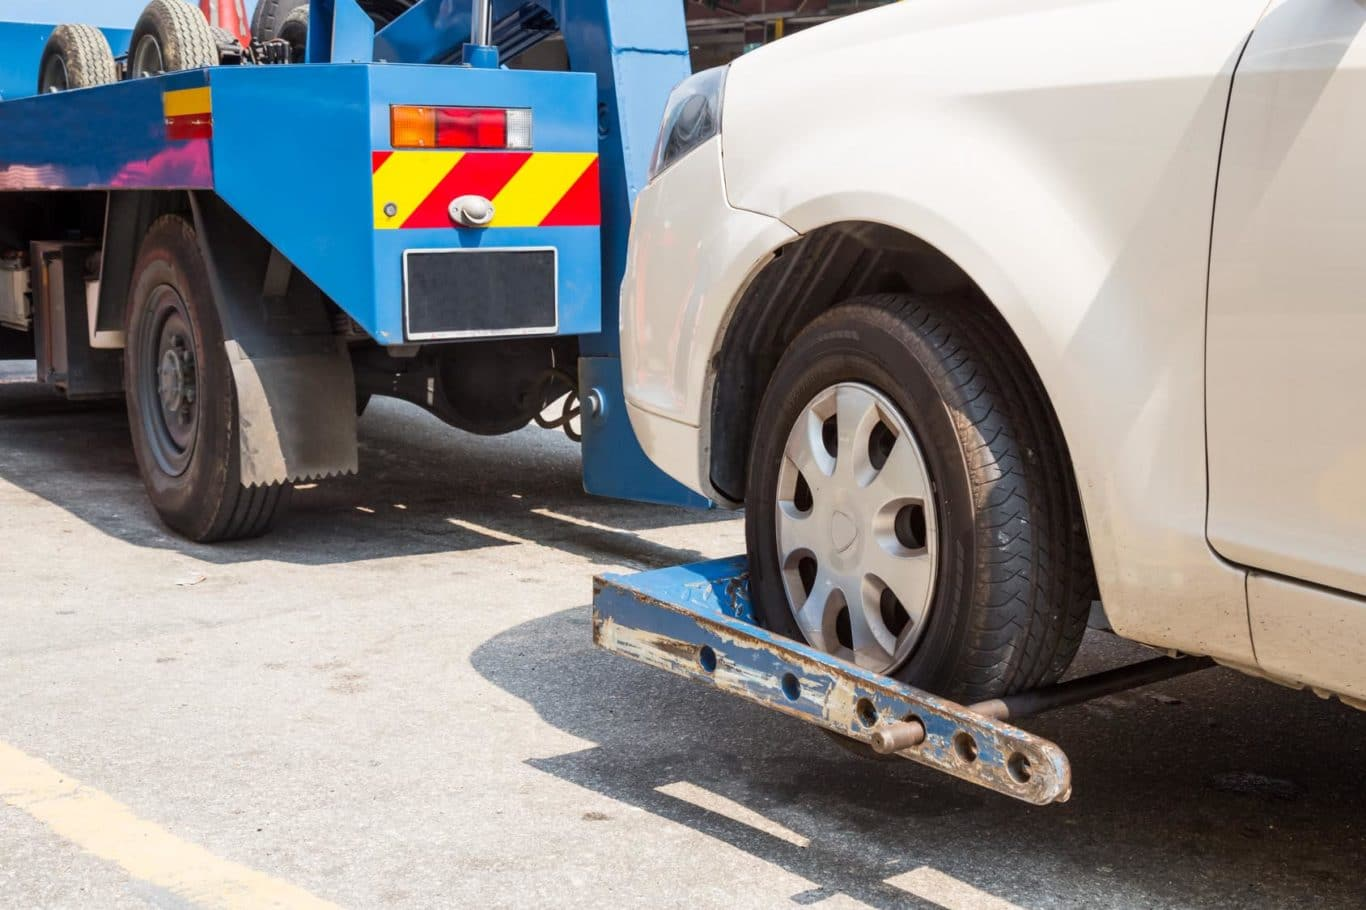 Ardclough expert Roadside Assistance services